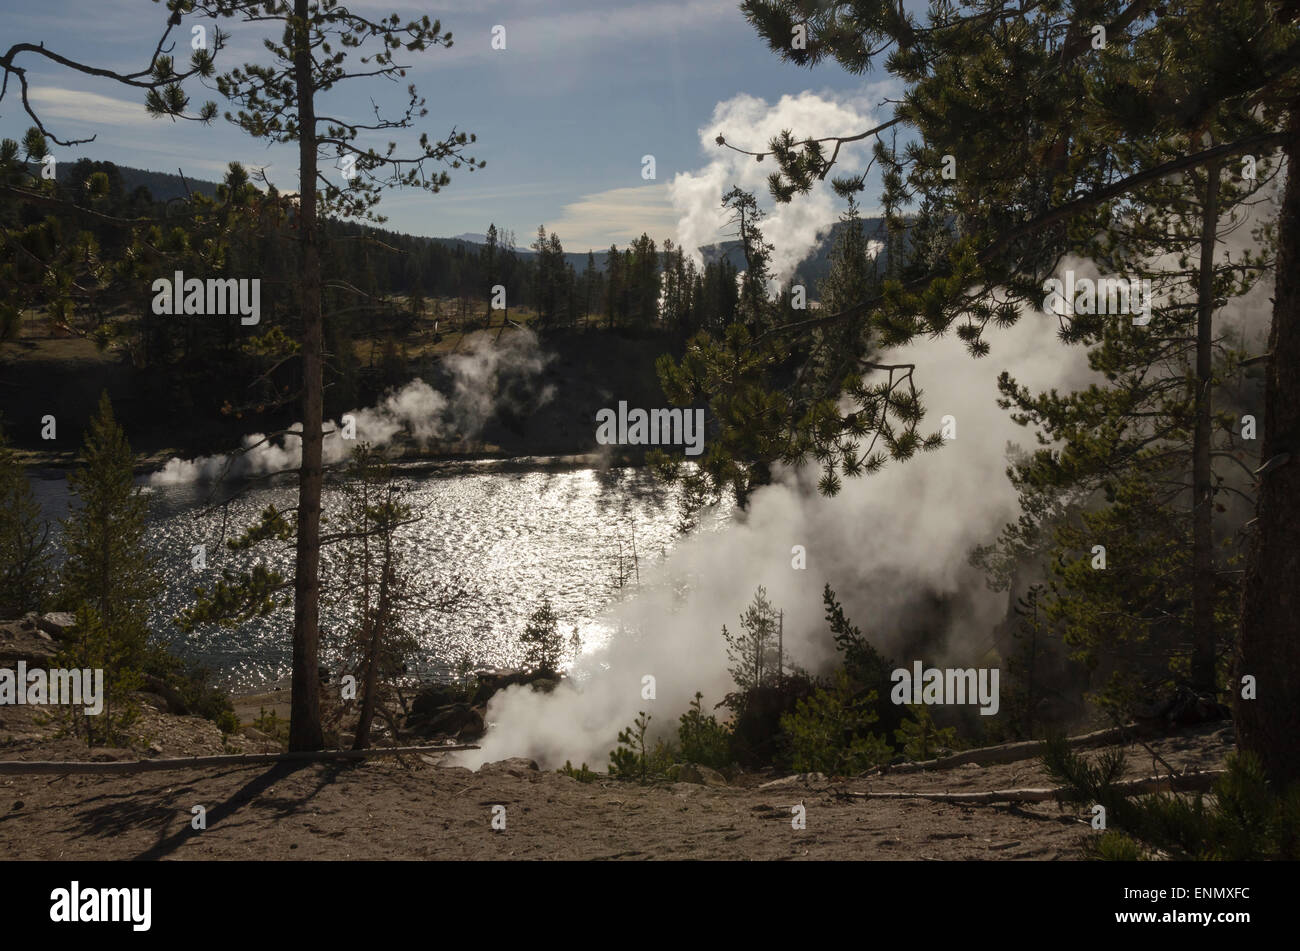 Fumaroles along the Yellowstone River belch steam, Yellowstone National Park, Wyoming - Stock Image